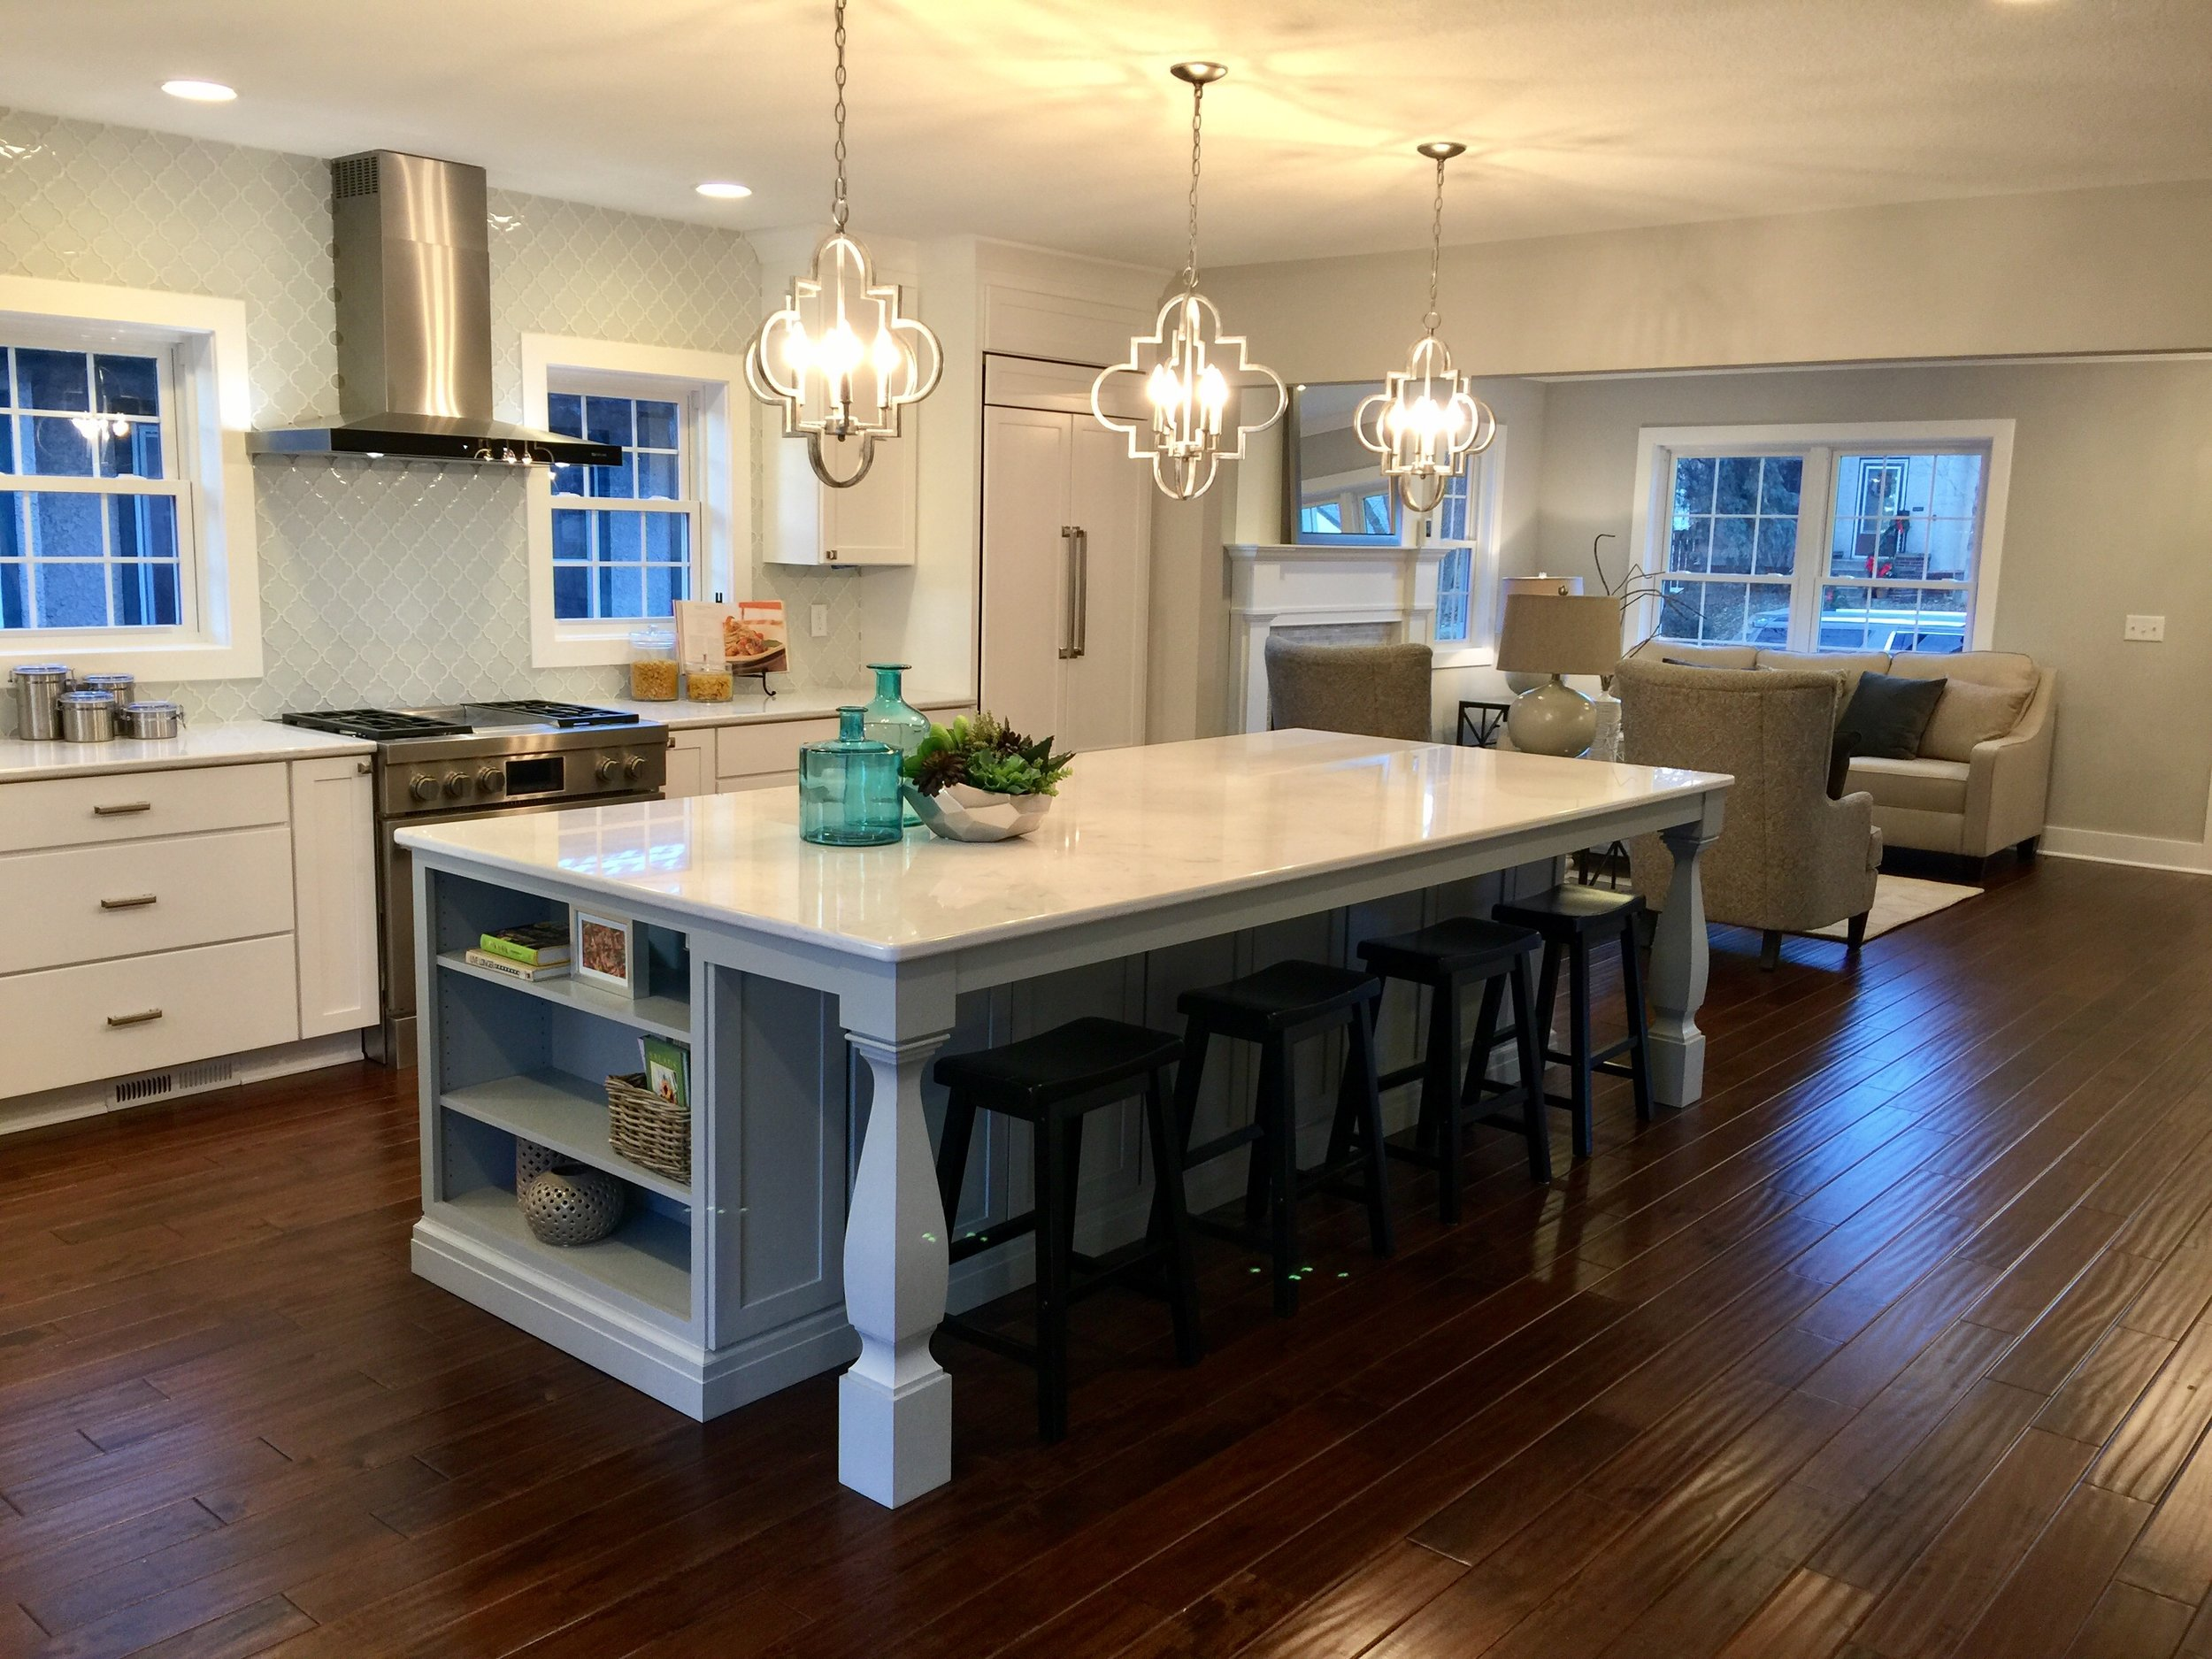 Click here to learn more about this custom kitchen design